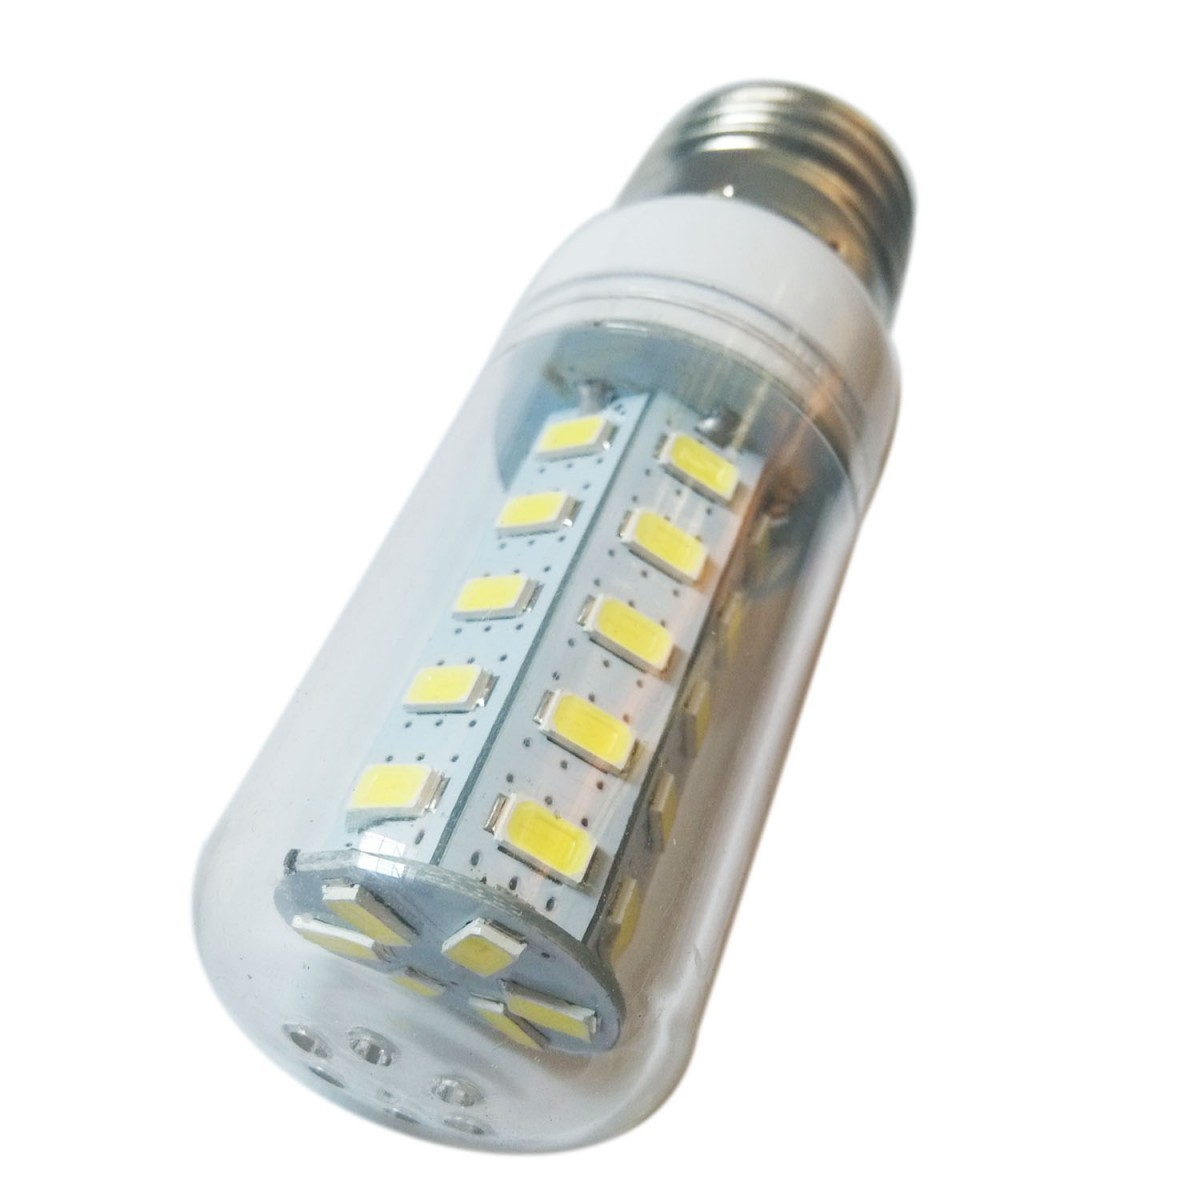 High Quality Led Light Bulb E27 Led Lamp SMD5730 220V 5w 6w Corn Led Bulb Lampada Led Chandelier Candle Lighting